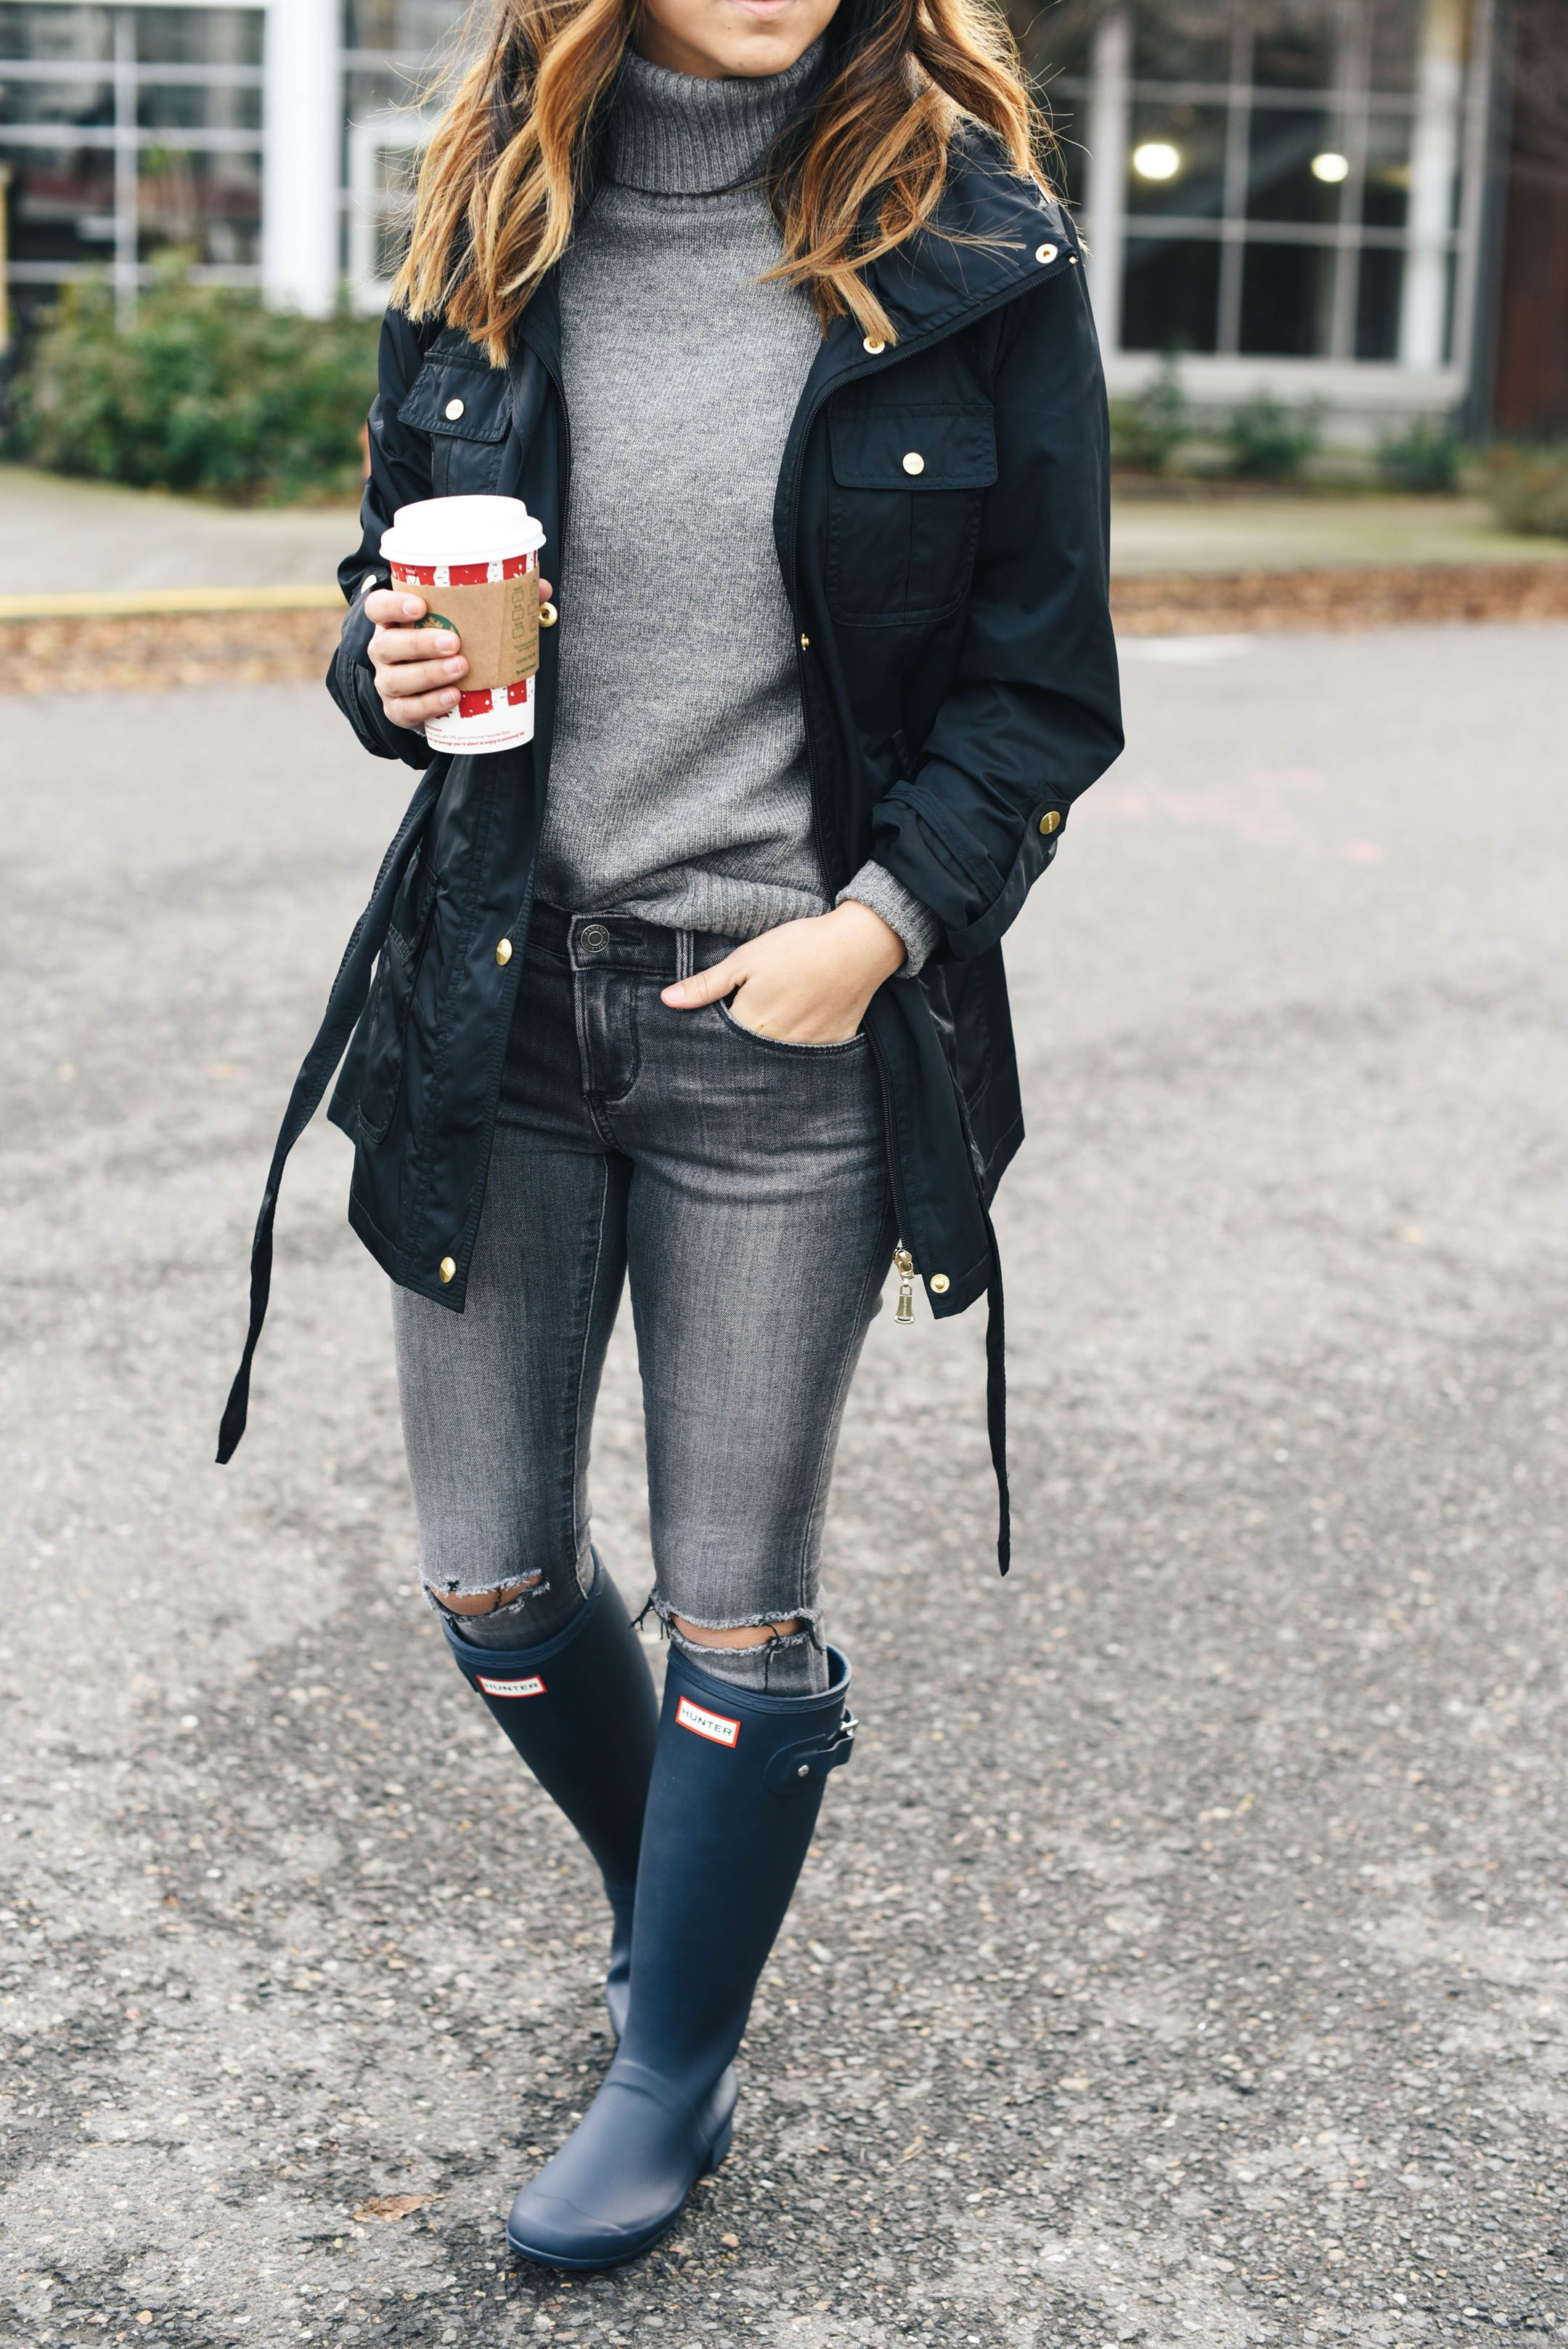 5bf0ced623c5 Ripped jeans beautiful grey sweater   casual in style rain boots.